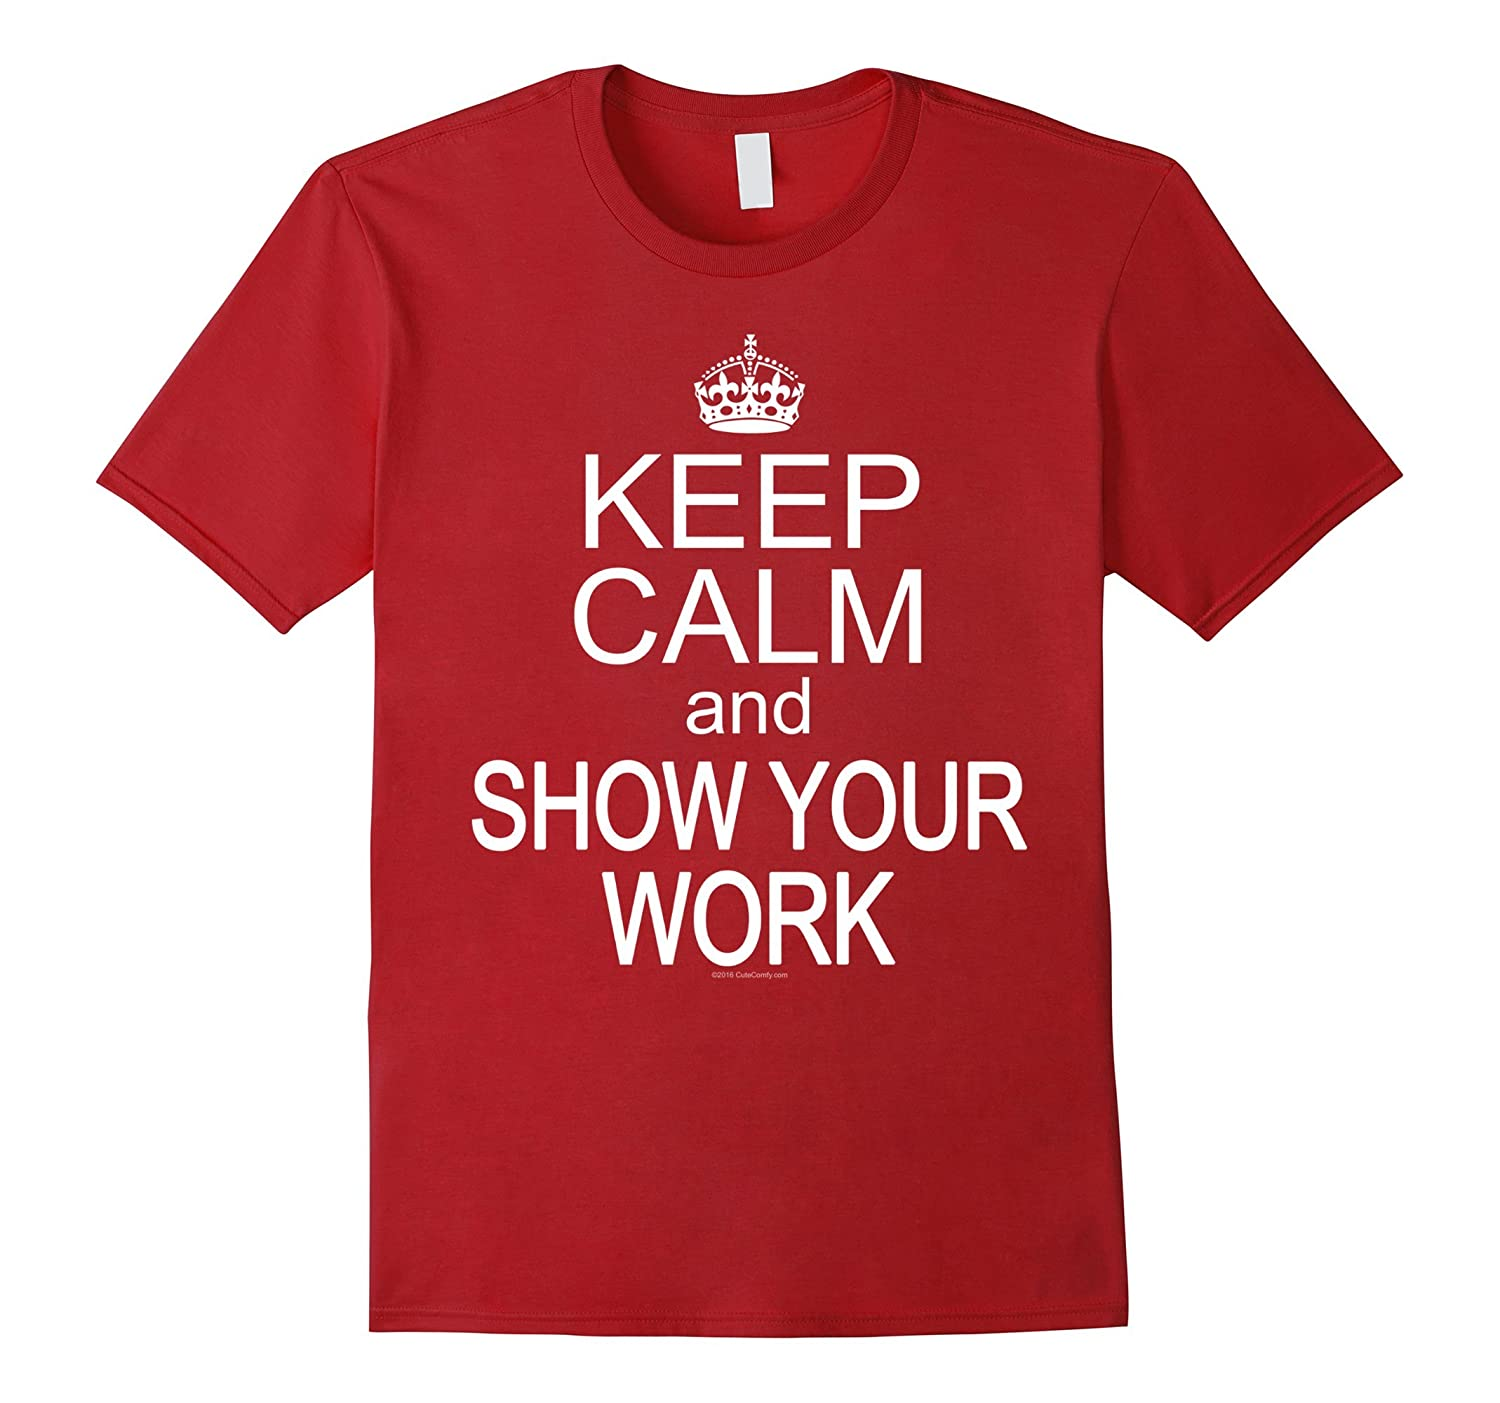 6325266b3 Imported Machine wash cold with like colors, dry low heat. Keep Calm and  Show your Work! Funny Teacher Appreciation gift ...